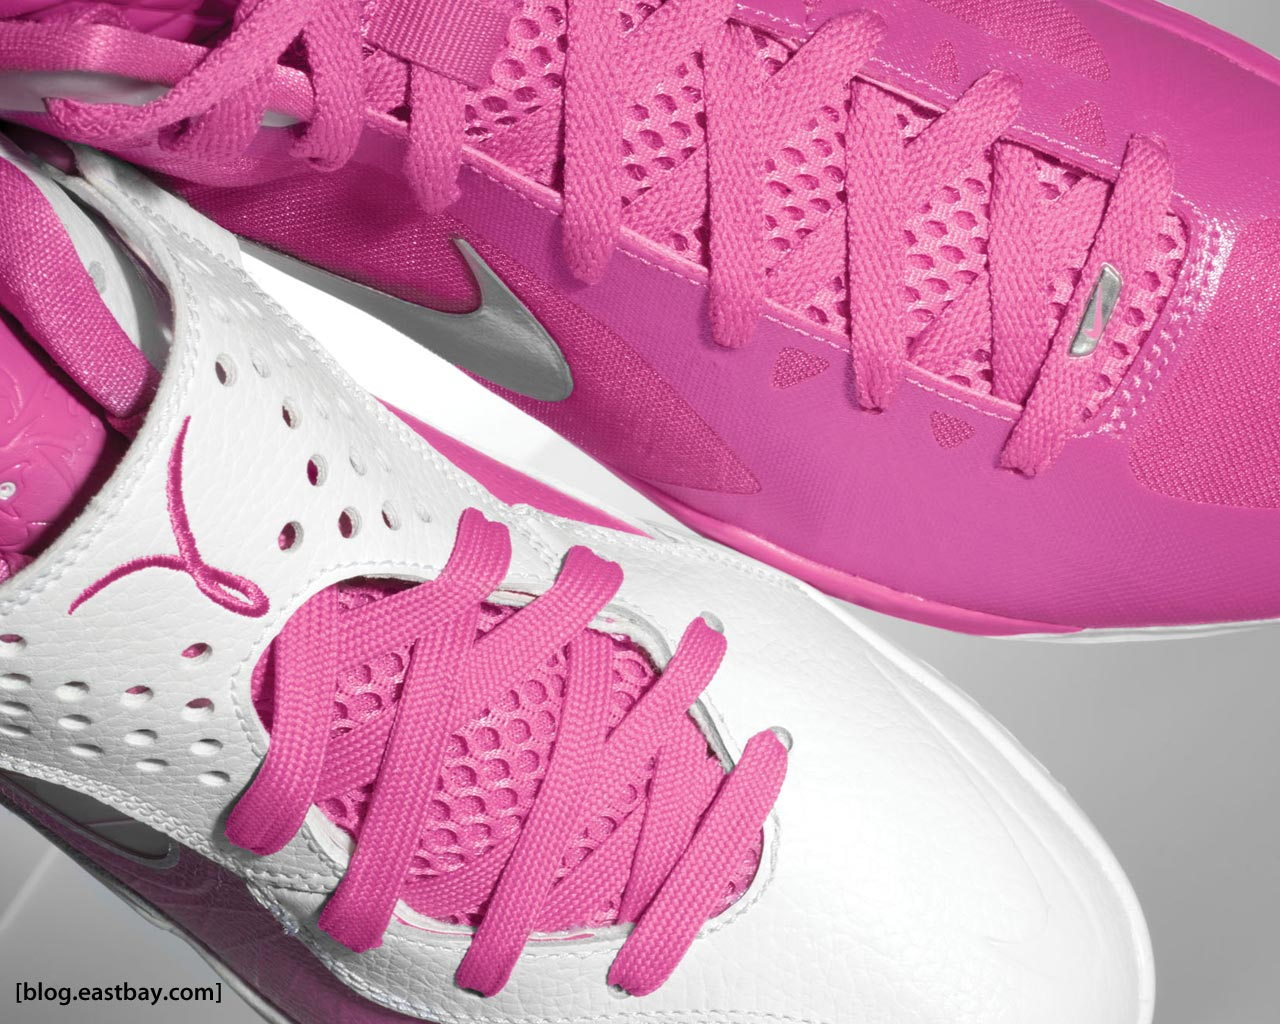 Eastbay Womens Basketball Shoes Of the basketball shoes